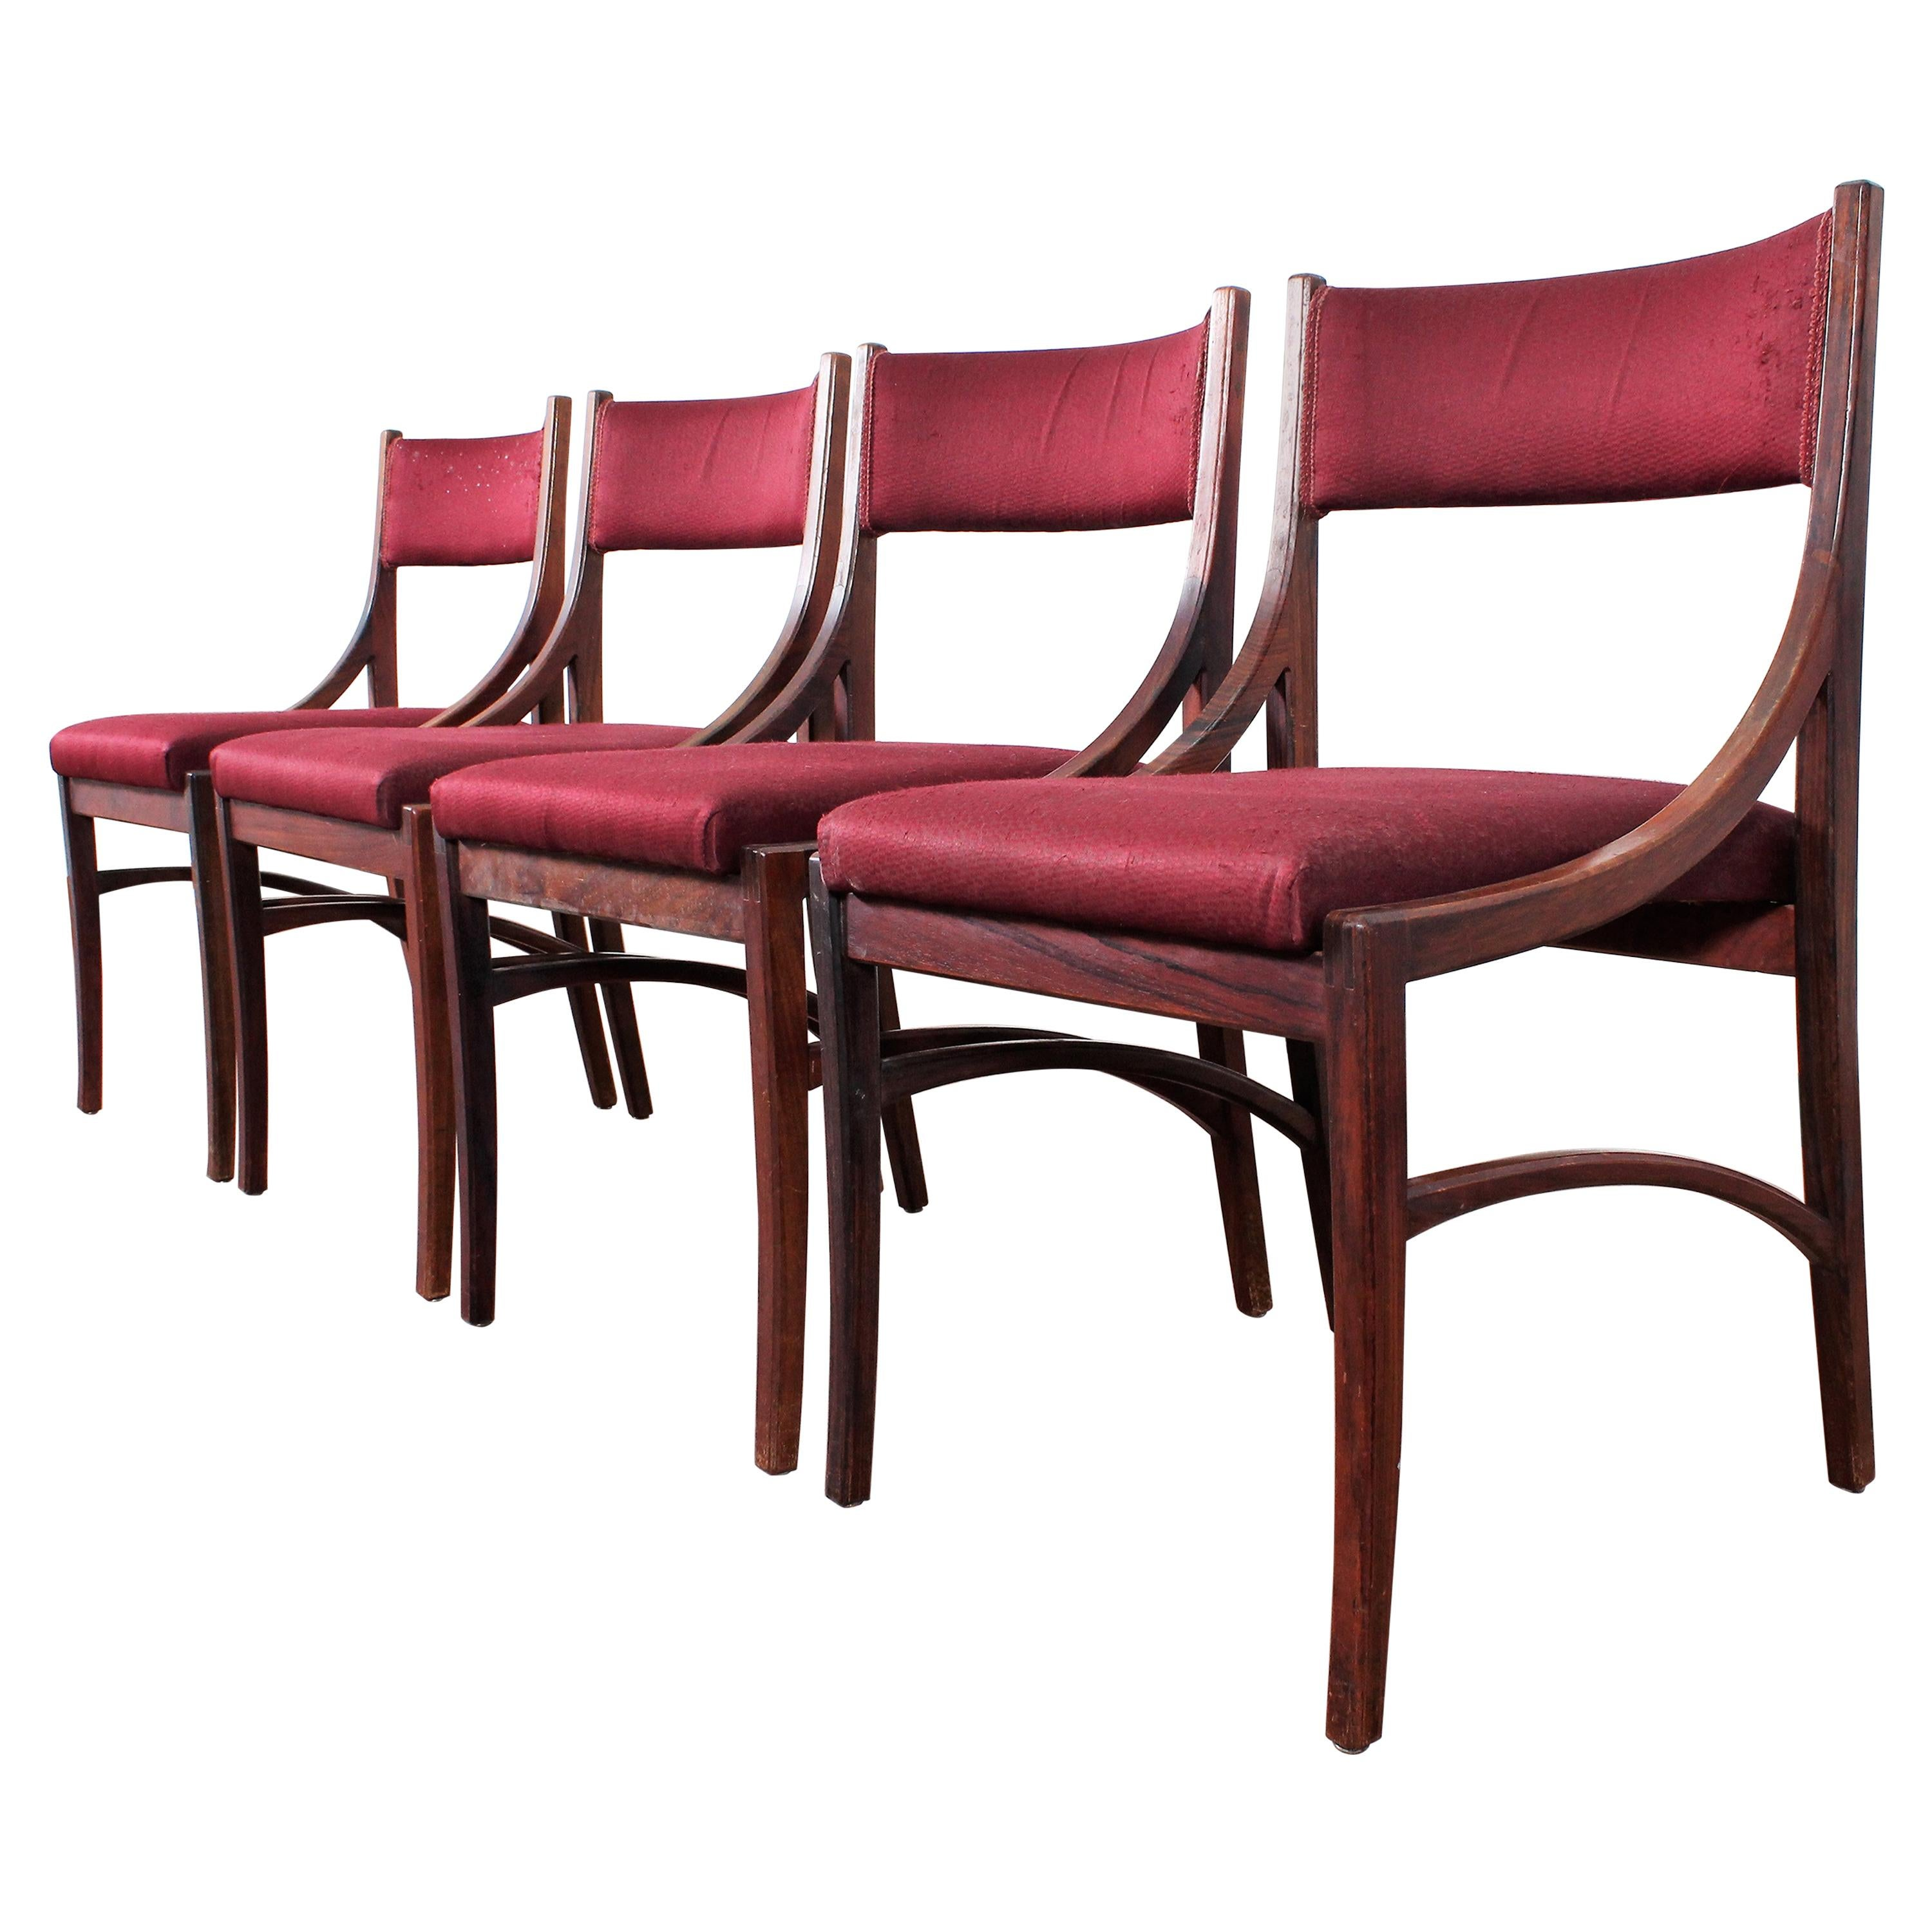 """Midcentury Wood and Burgundy Fabric Chairs """"mod 110"""" by Ico Parisi, Italy, 1960s"""